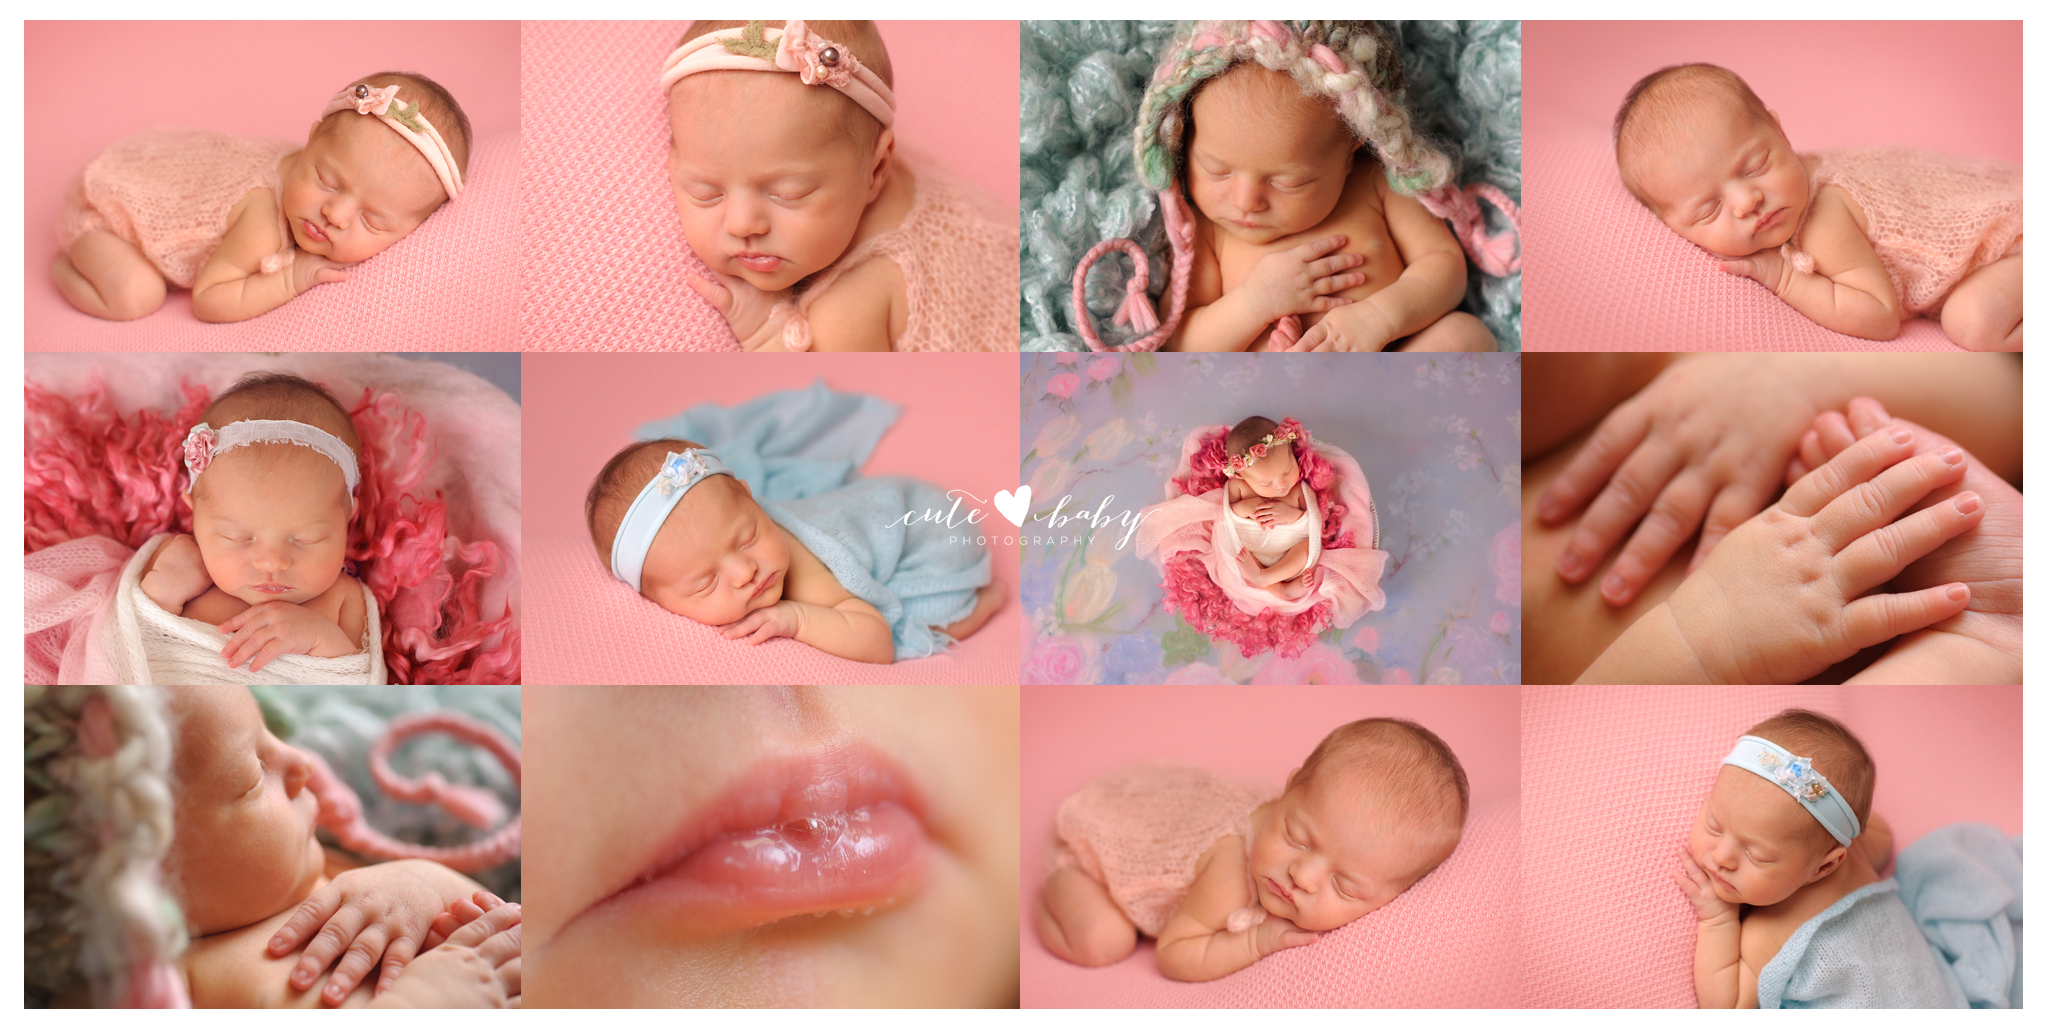 Newborn Photography Packages, Cute Baby Photography, Aneta Gancarz